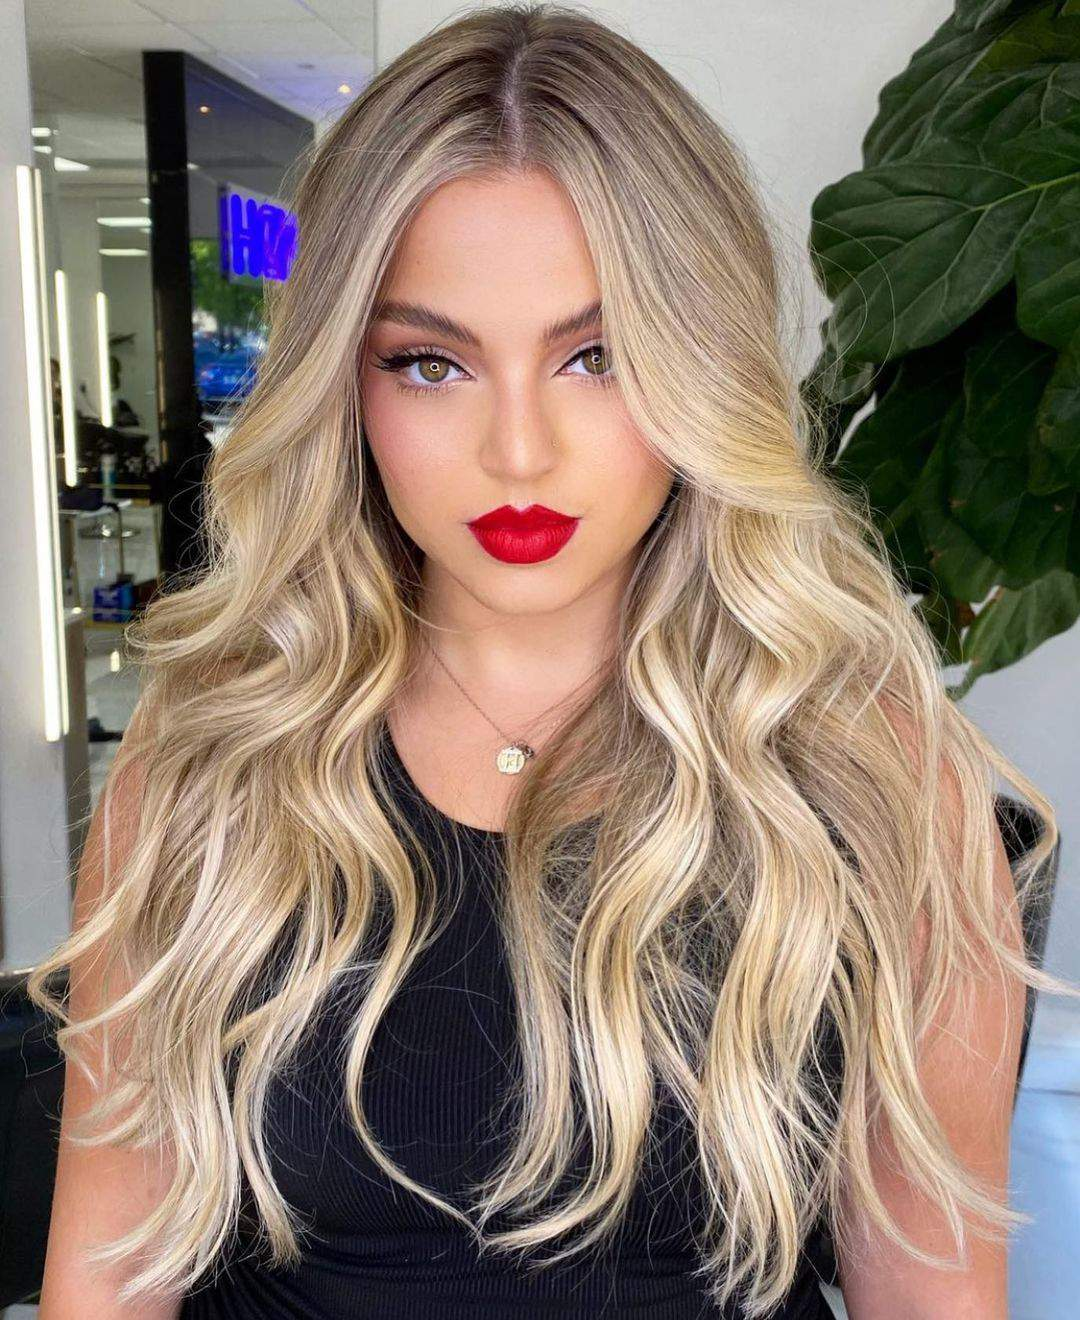 40+ Awesome Hairstyles For Girls With Long Hair images 5